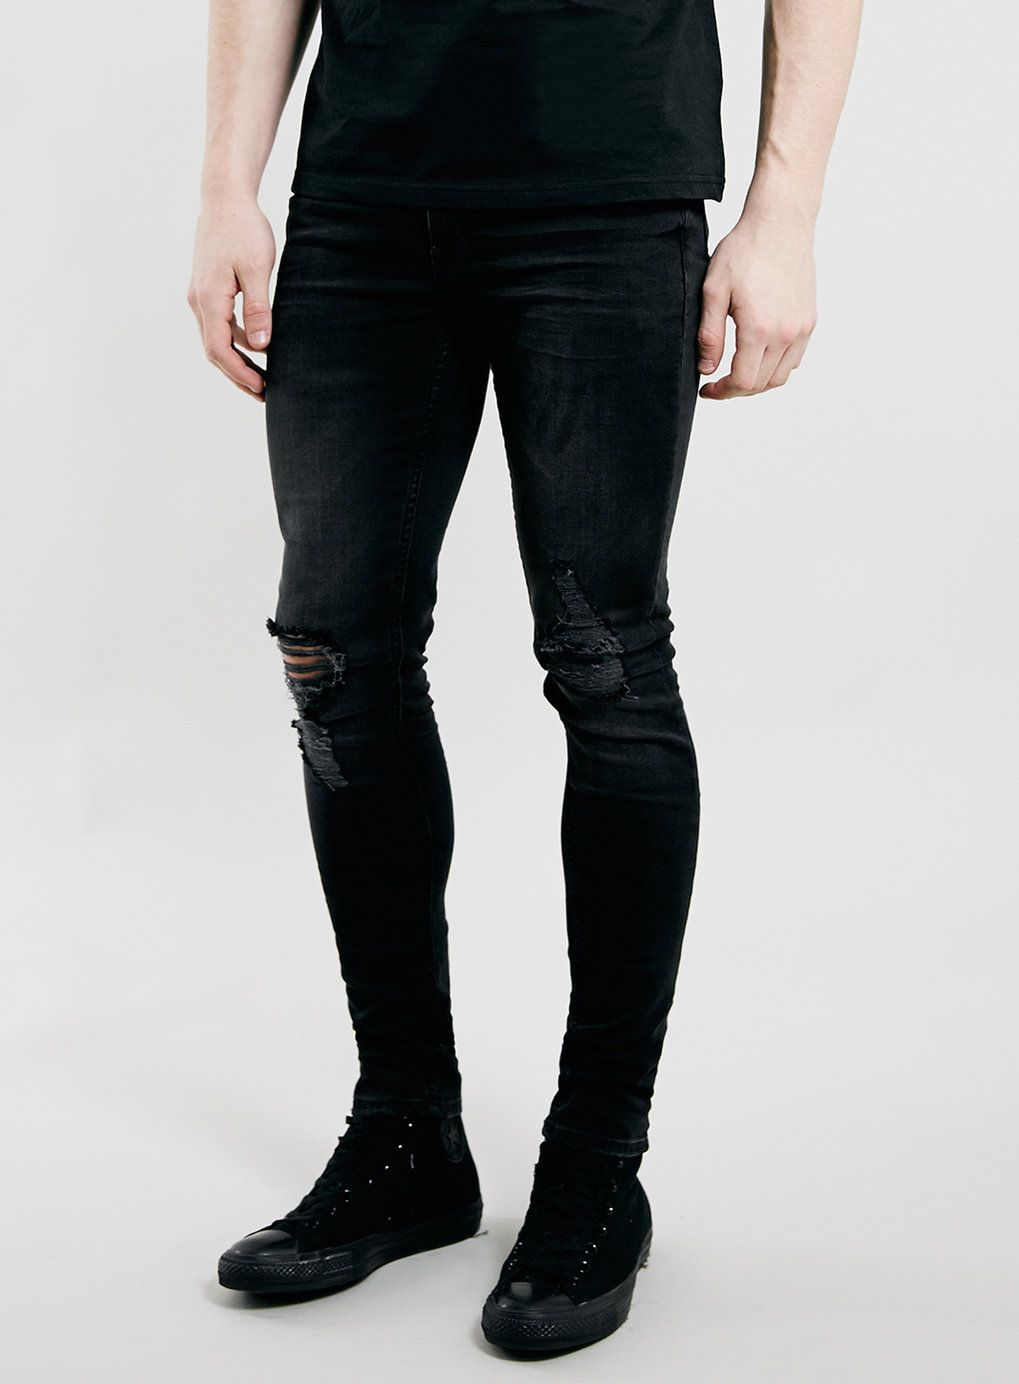 Washed Black Ripped Spray On Skinny Jeans - Men's Jeans - Clothing ...